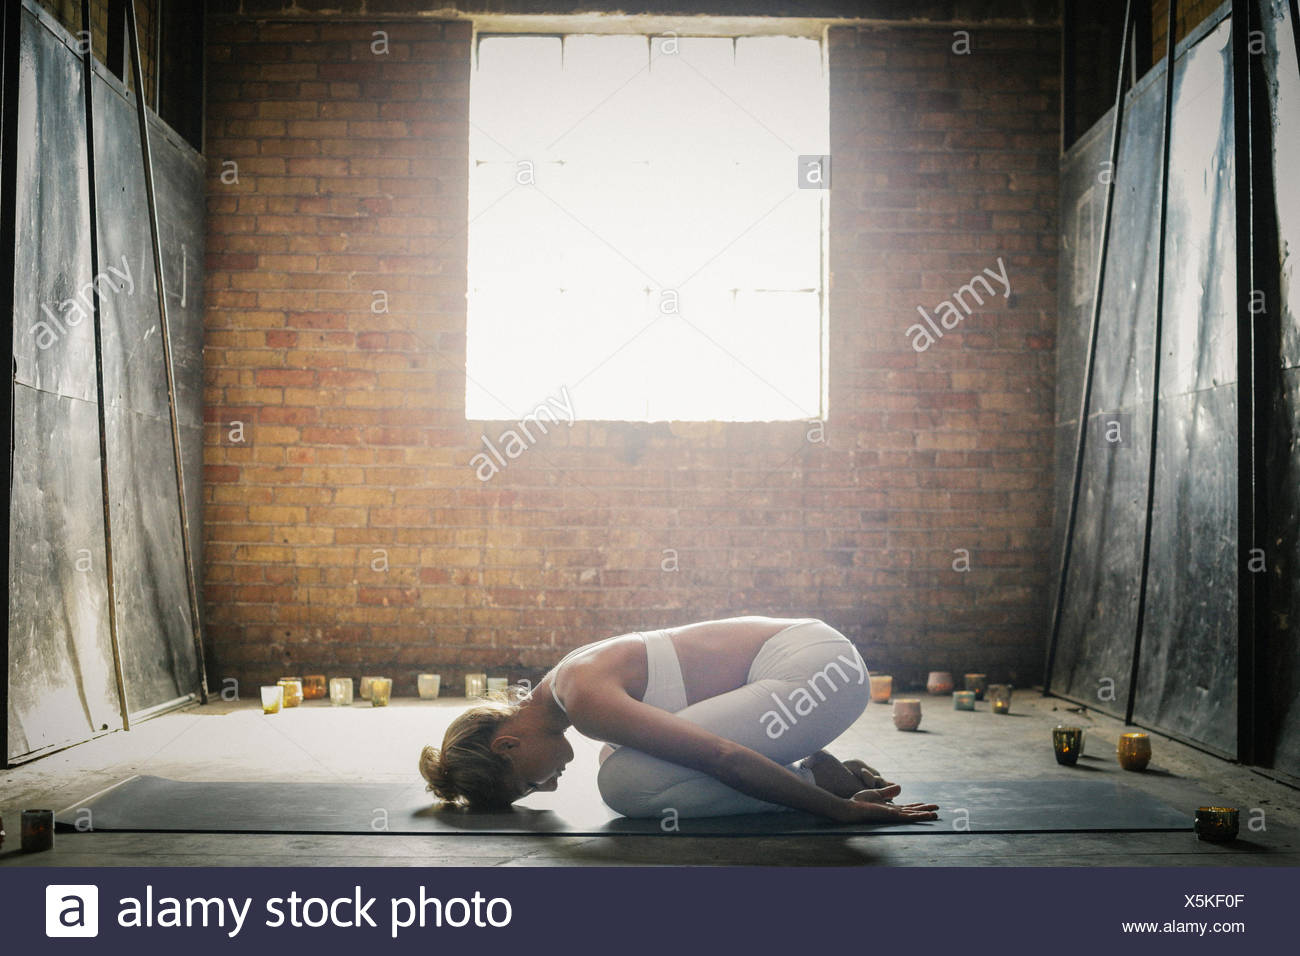 A blonde woman in a white crop top and leggings,kneeling on a mat on the floor surrounded by candles. - Stock Image